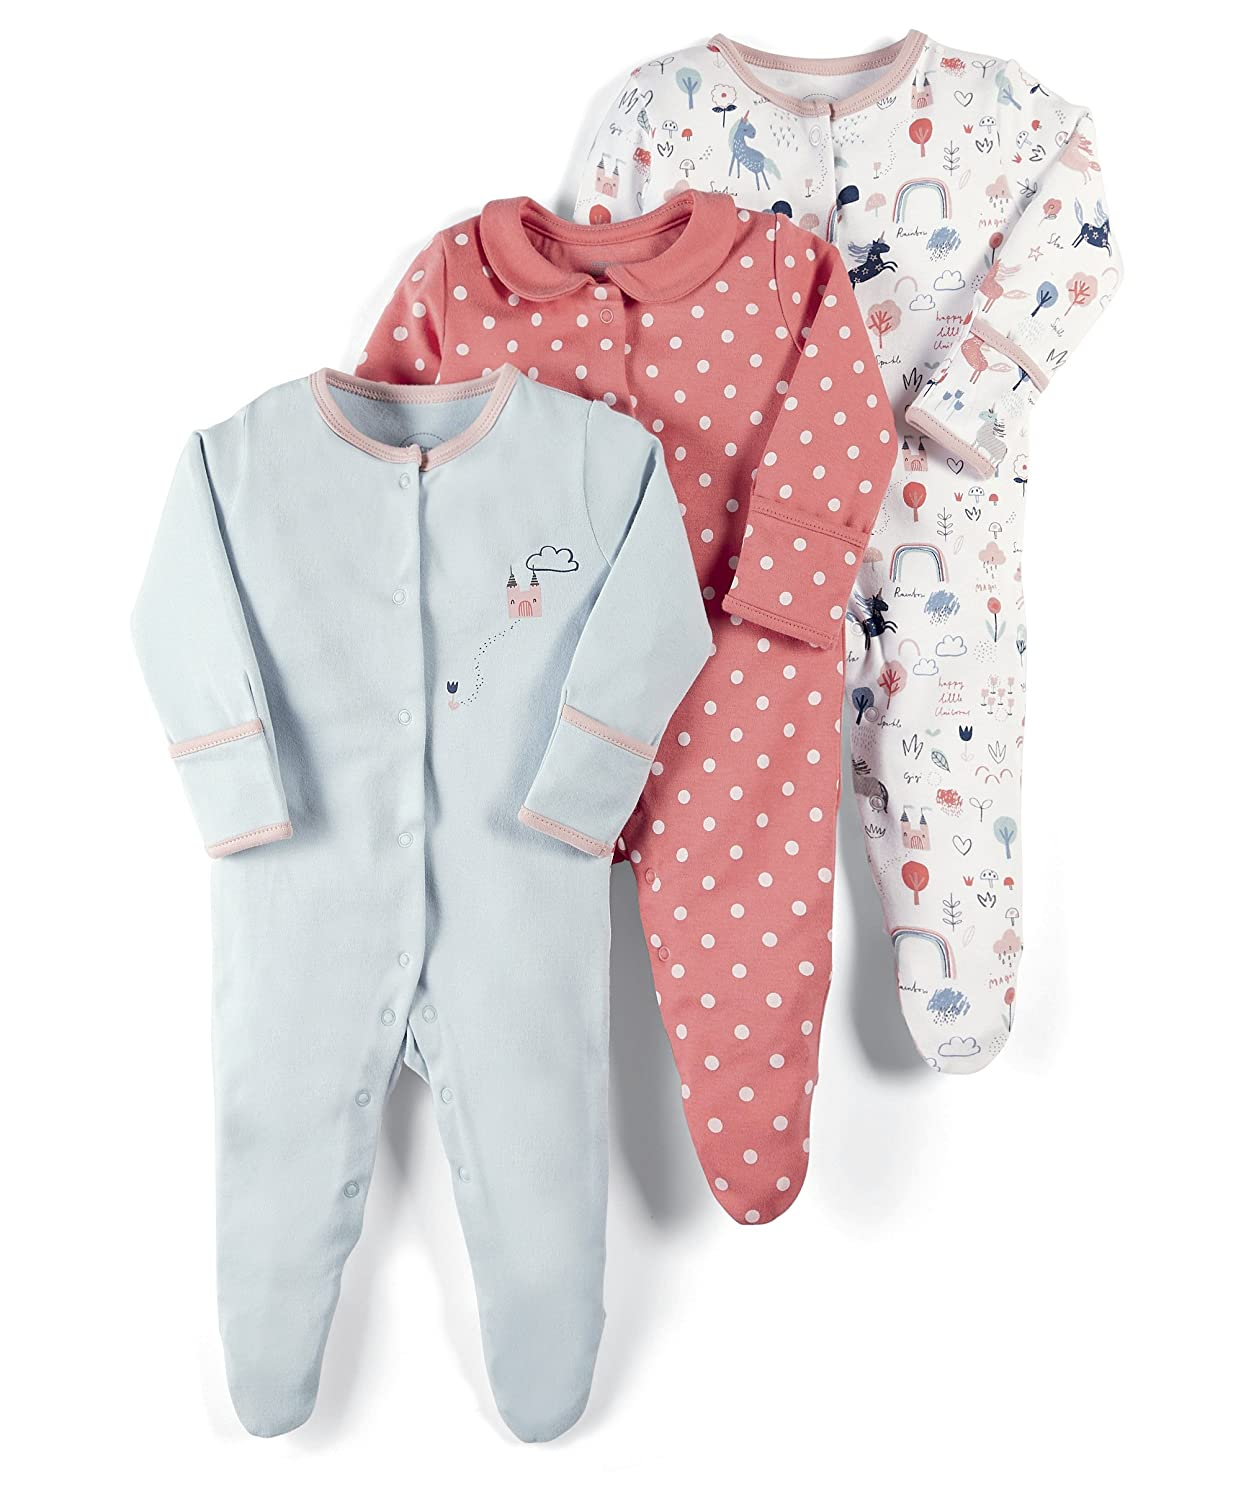 Mamas and Papas Baby Girls' 3 Pack Unicorn Sleepsuits Footies, 0-3 Months Pack of 3 S79FGA6B2